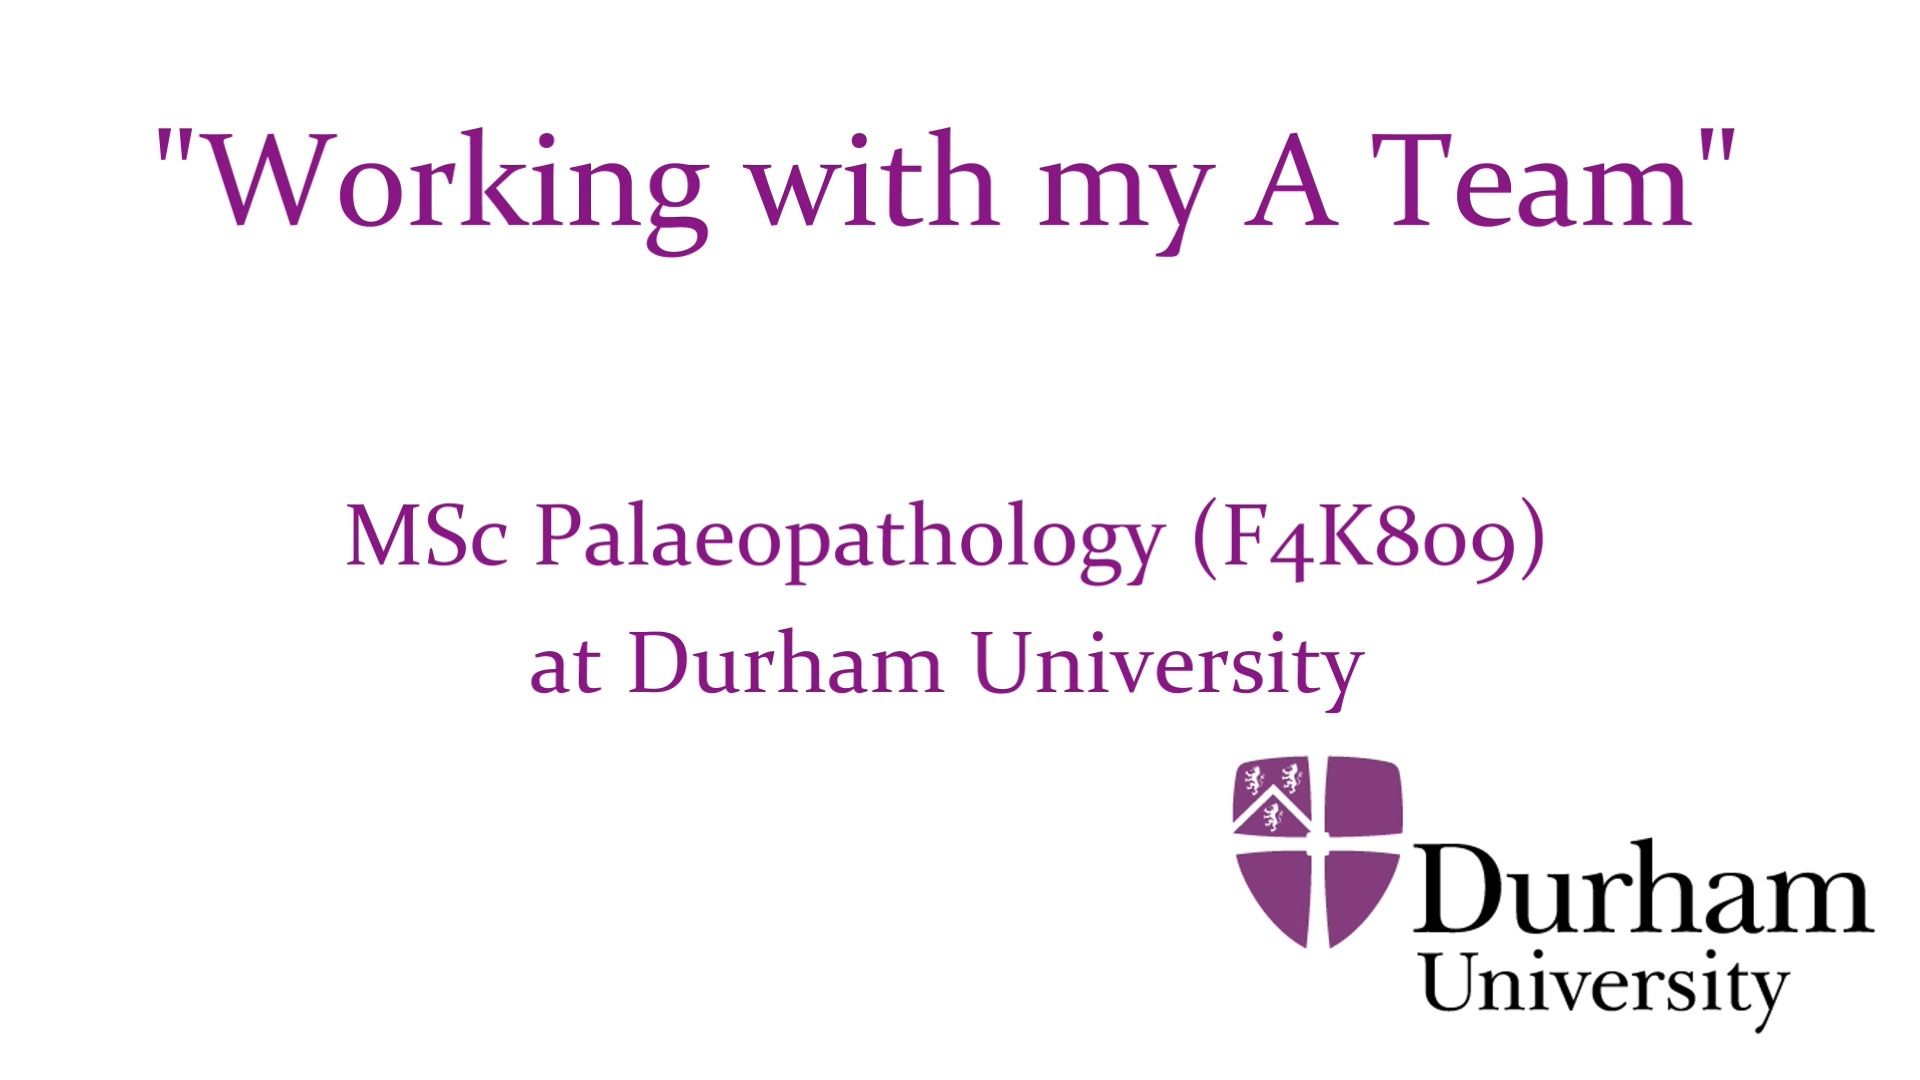 MSc Palaeopathology at Durham University